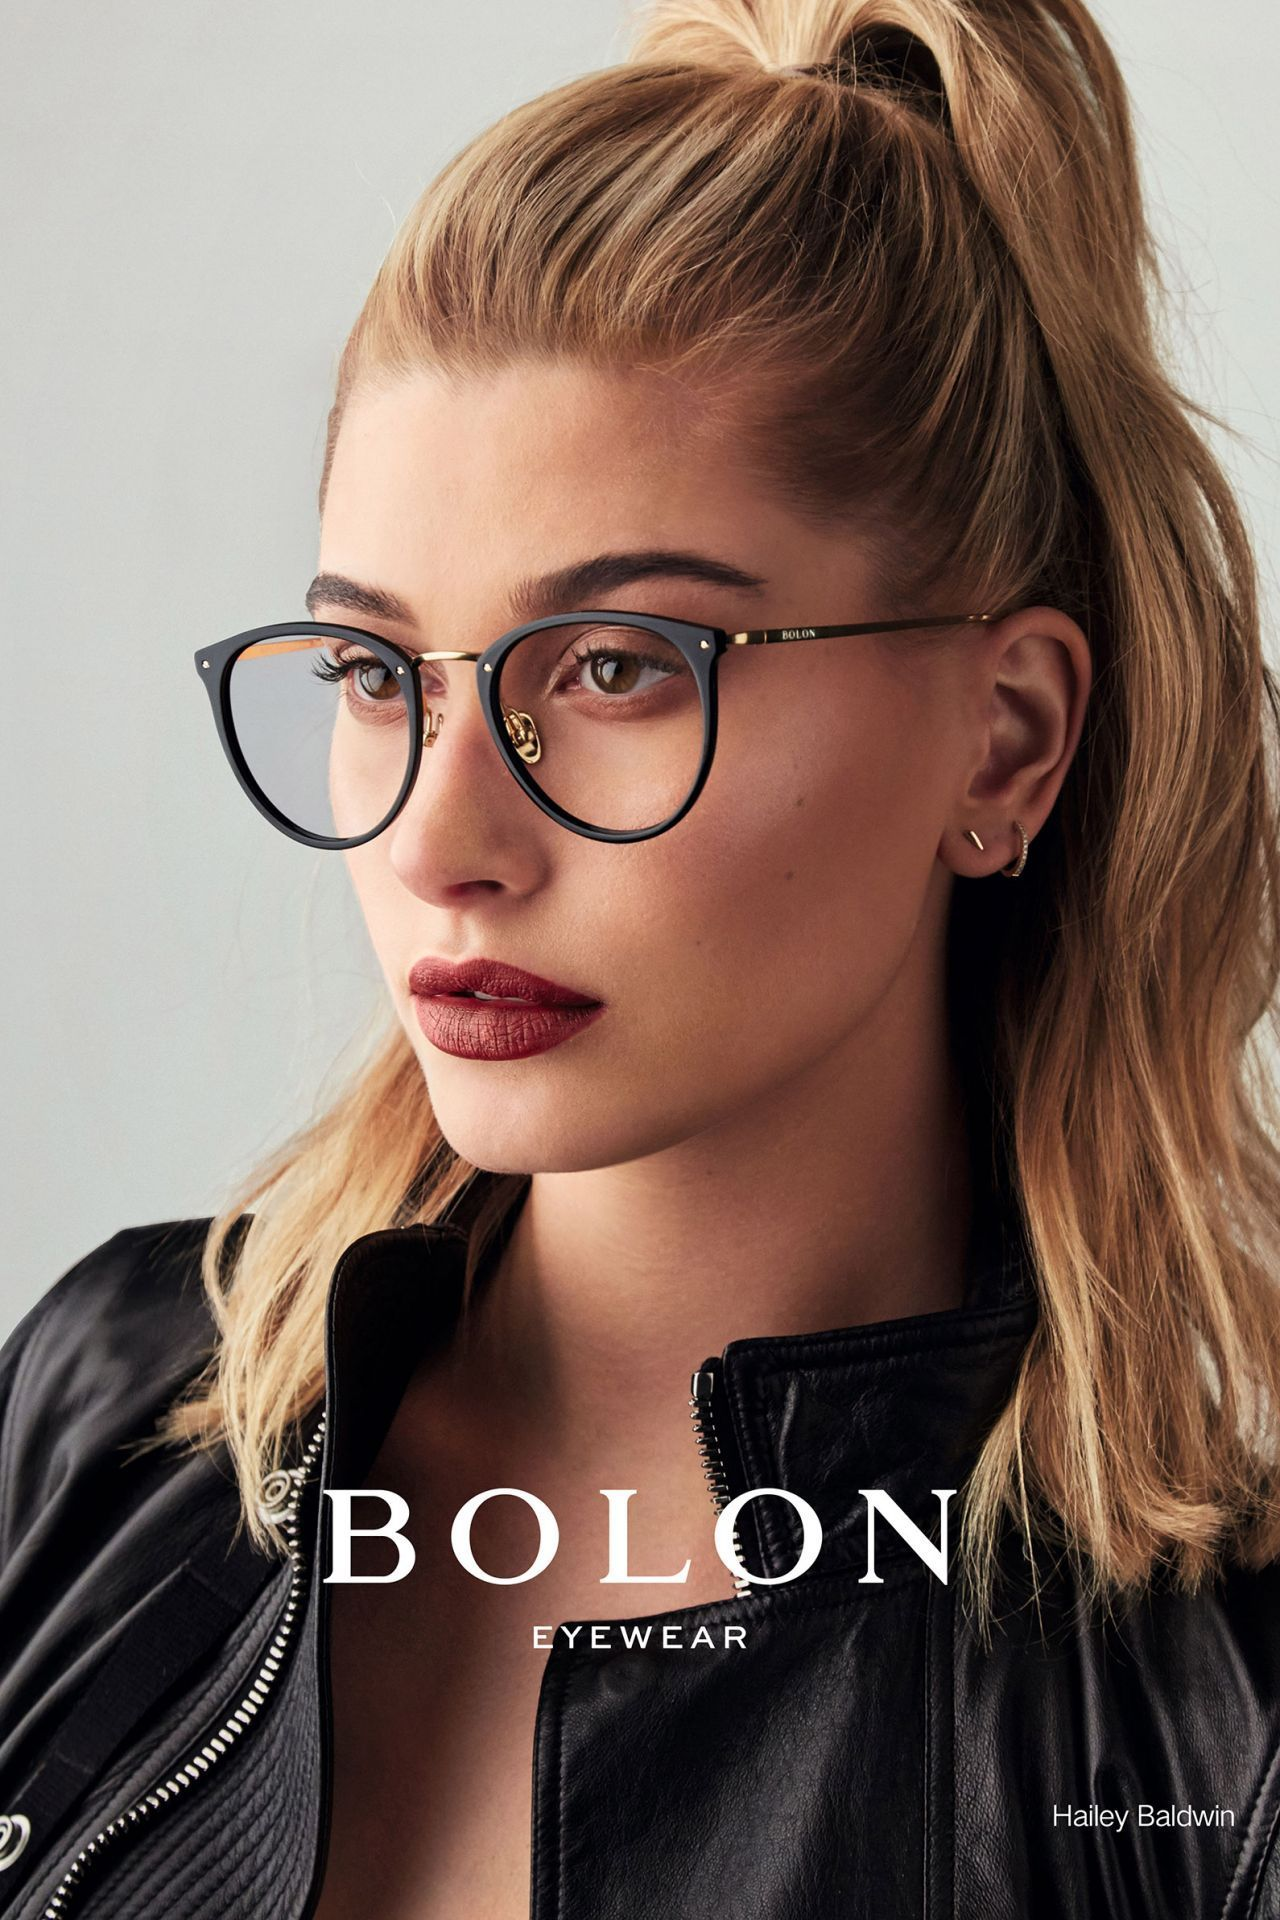 af6b98eb2e6 Bolon Eyewear Taps Model Hailey Baldwin As The Face Of Its 2017 Campaign.  The Blonde Beauty Poses In Chic Sunglasses And Optical Styles F.